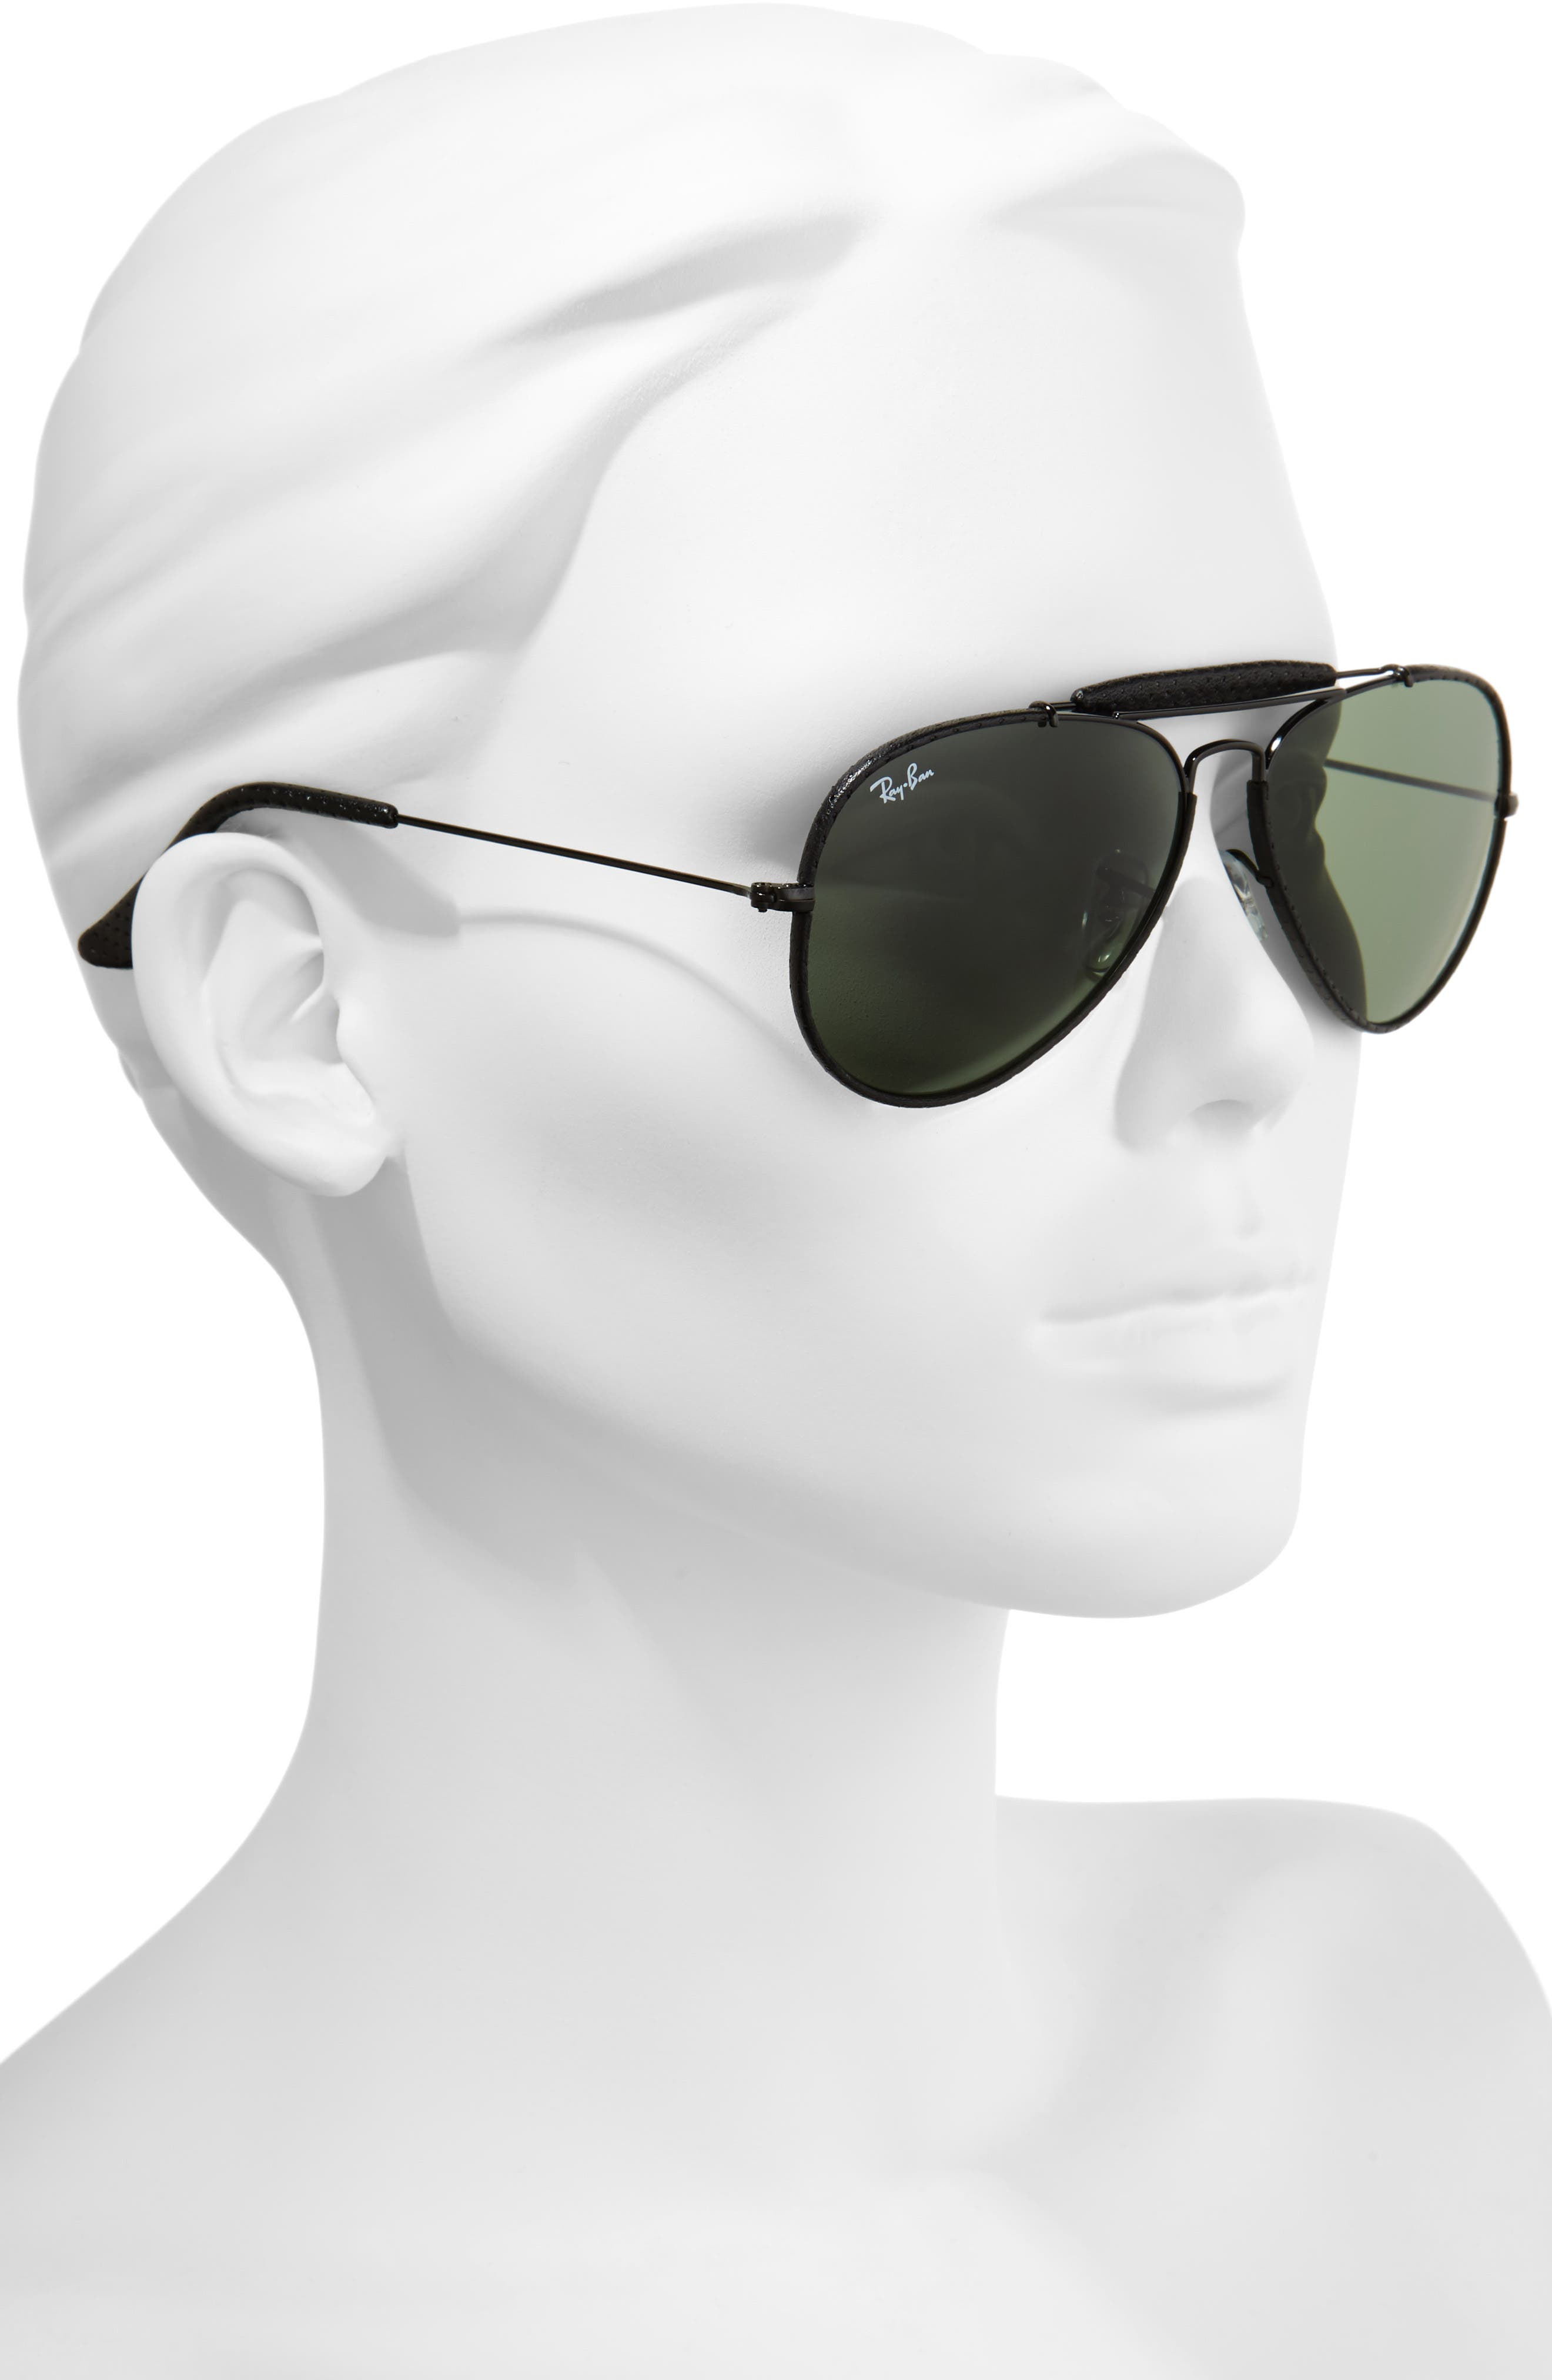 Outdoorsman 58mm Aviator Sunglasses,                             Alternate thumbnail 2, color,                             Black/ Green